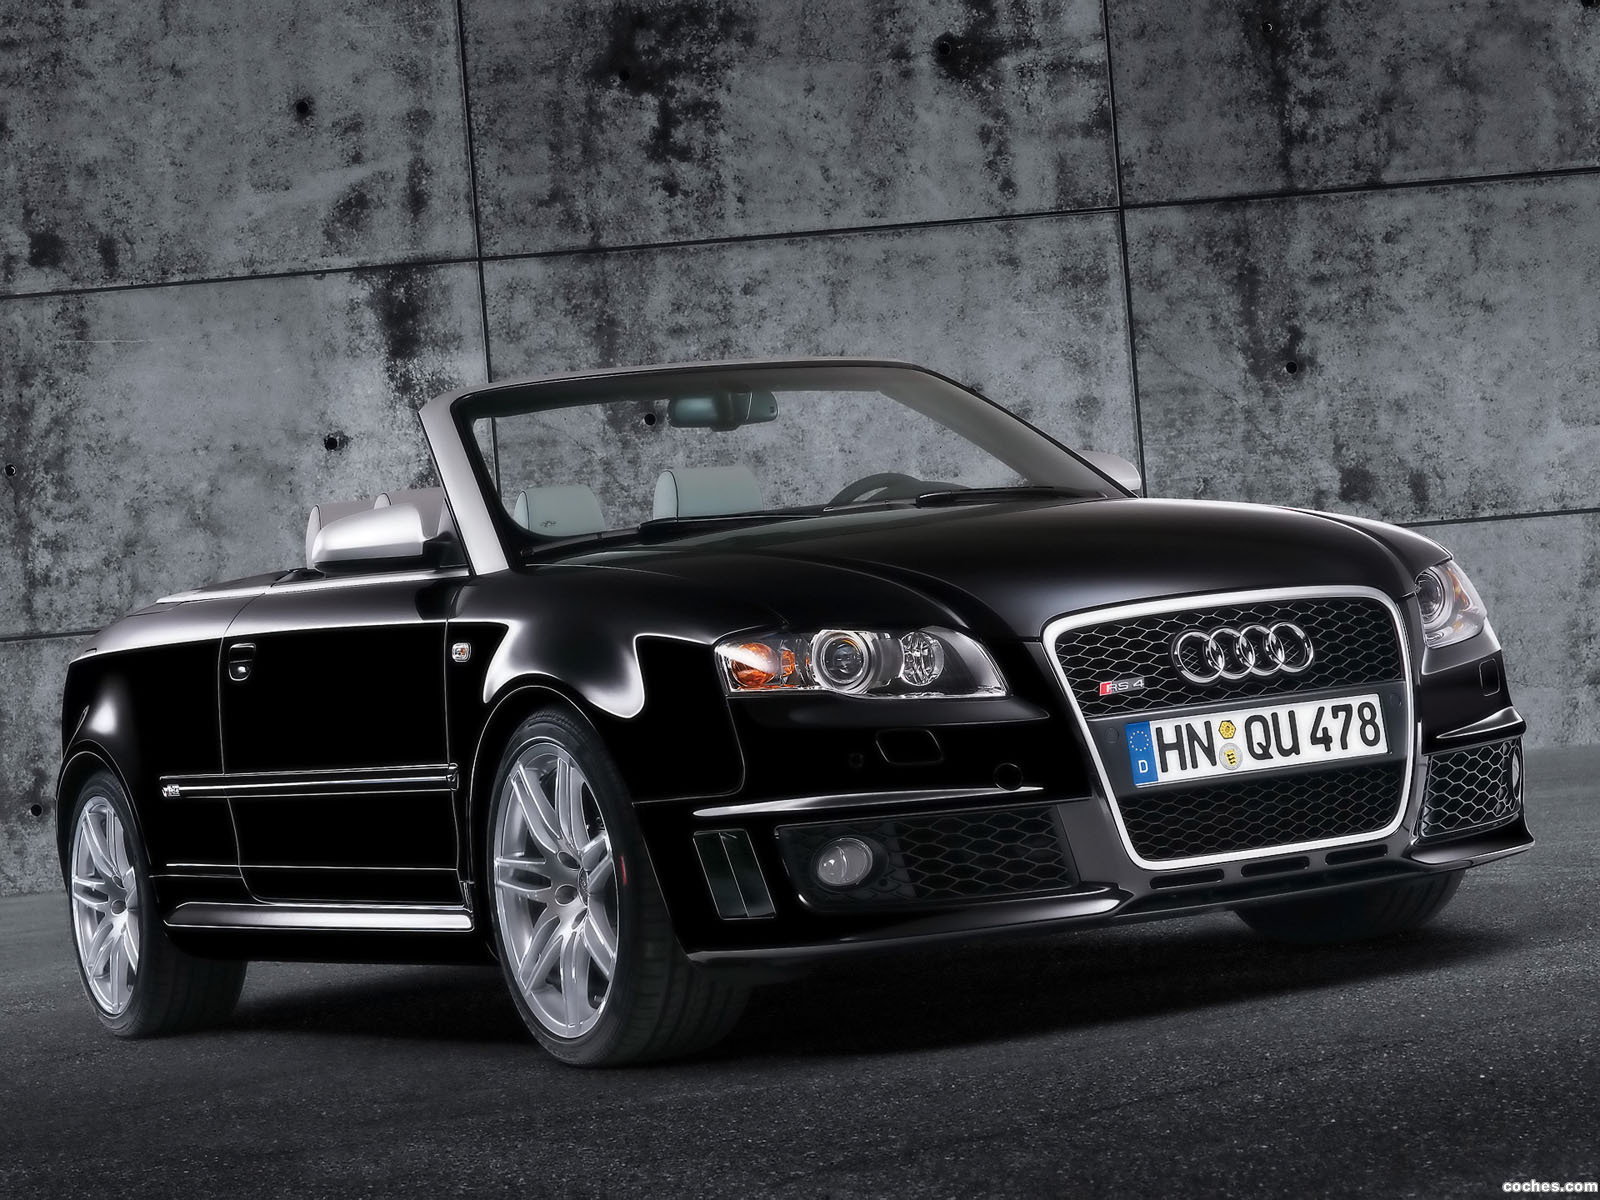 fotos de audi rs4 cabriolet b7 2006. Black Bedroom Furniture Sets. Home Design Ideas